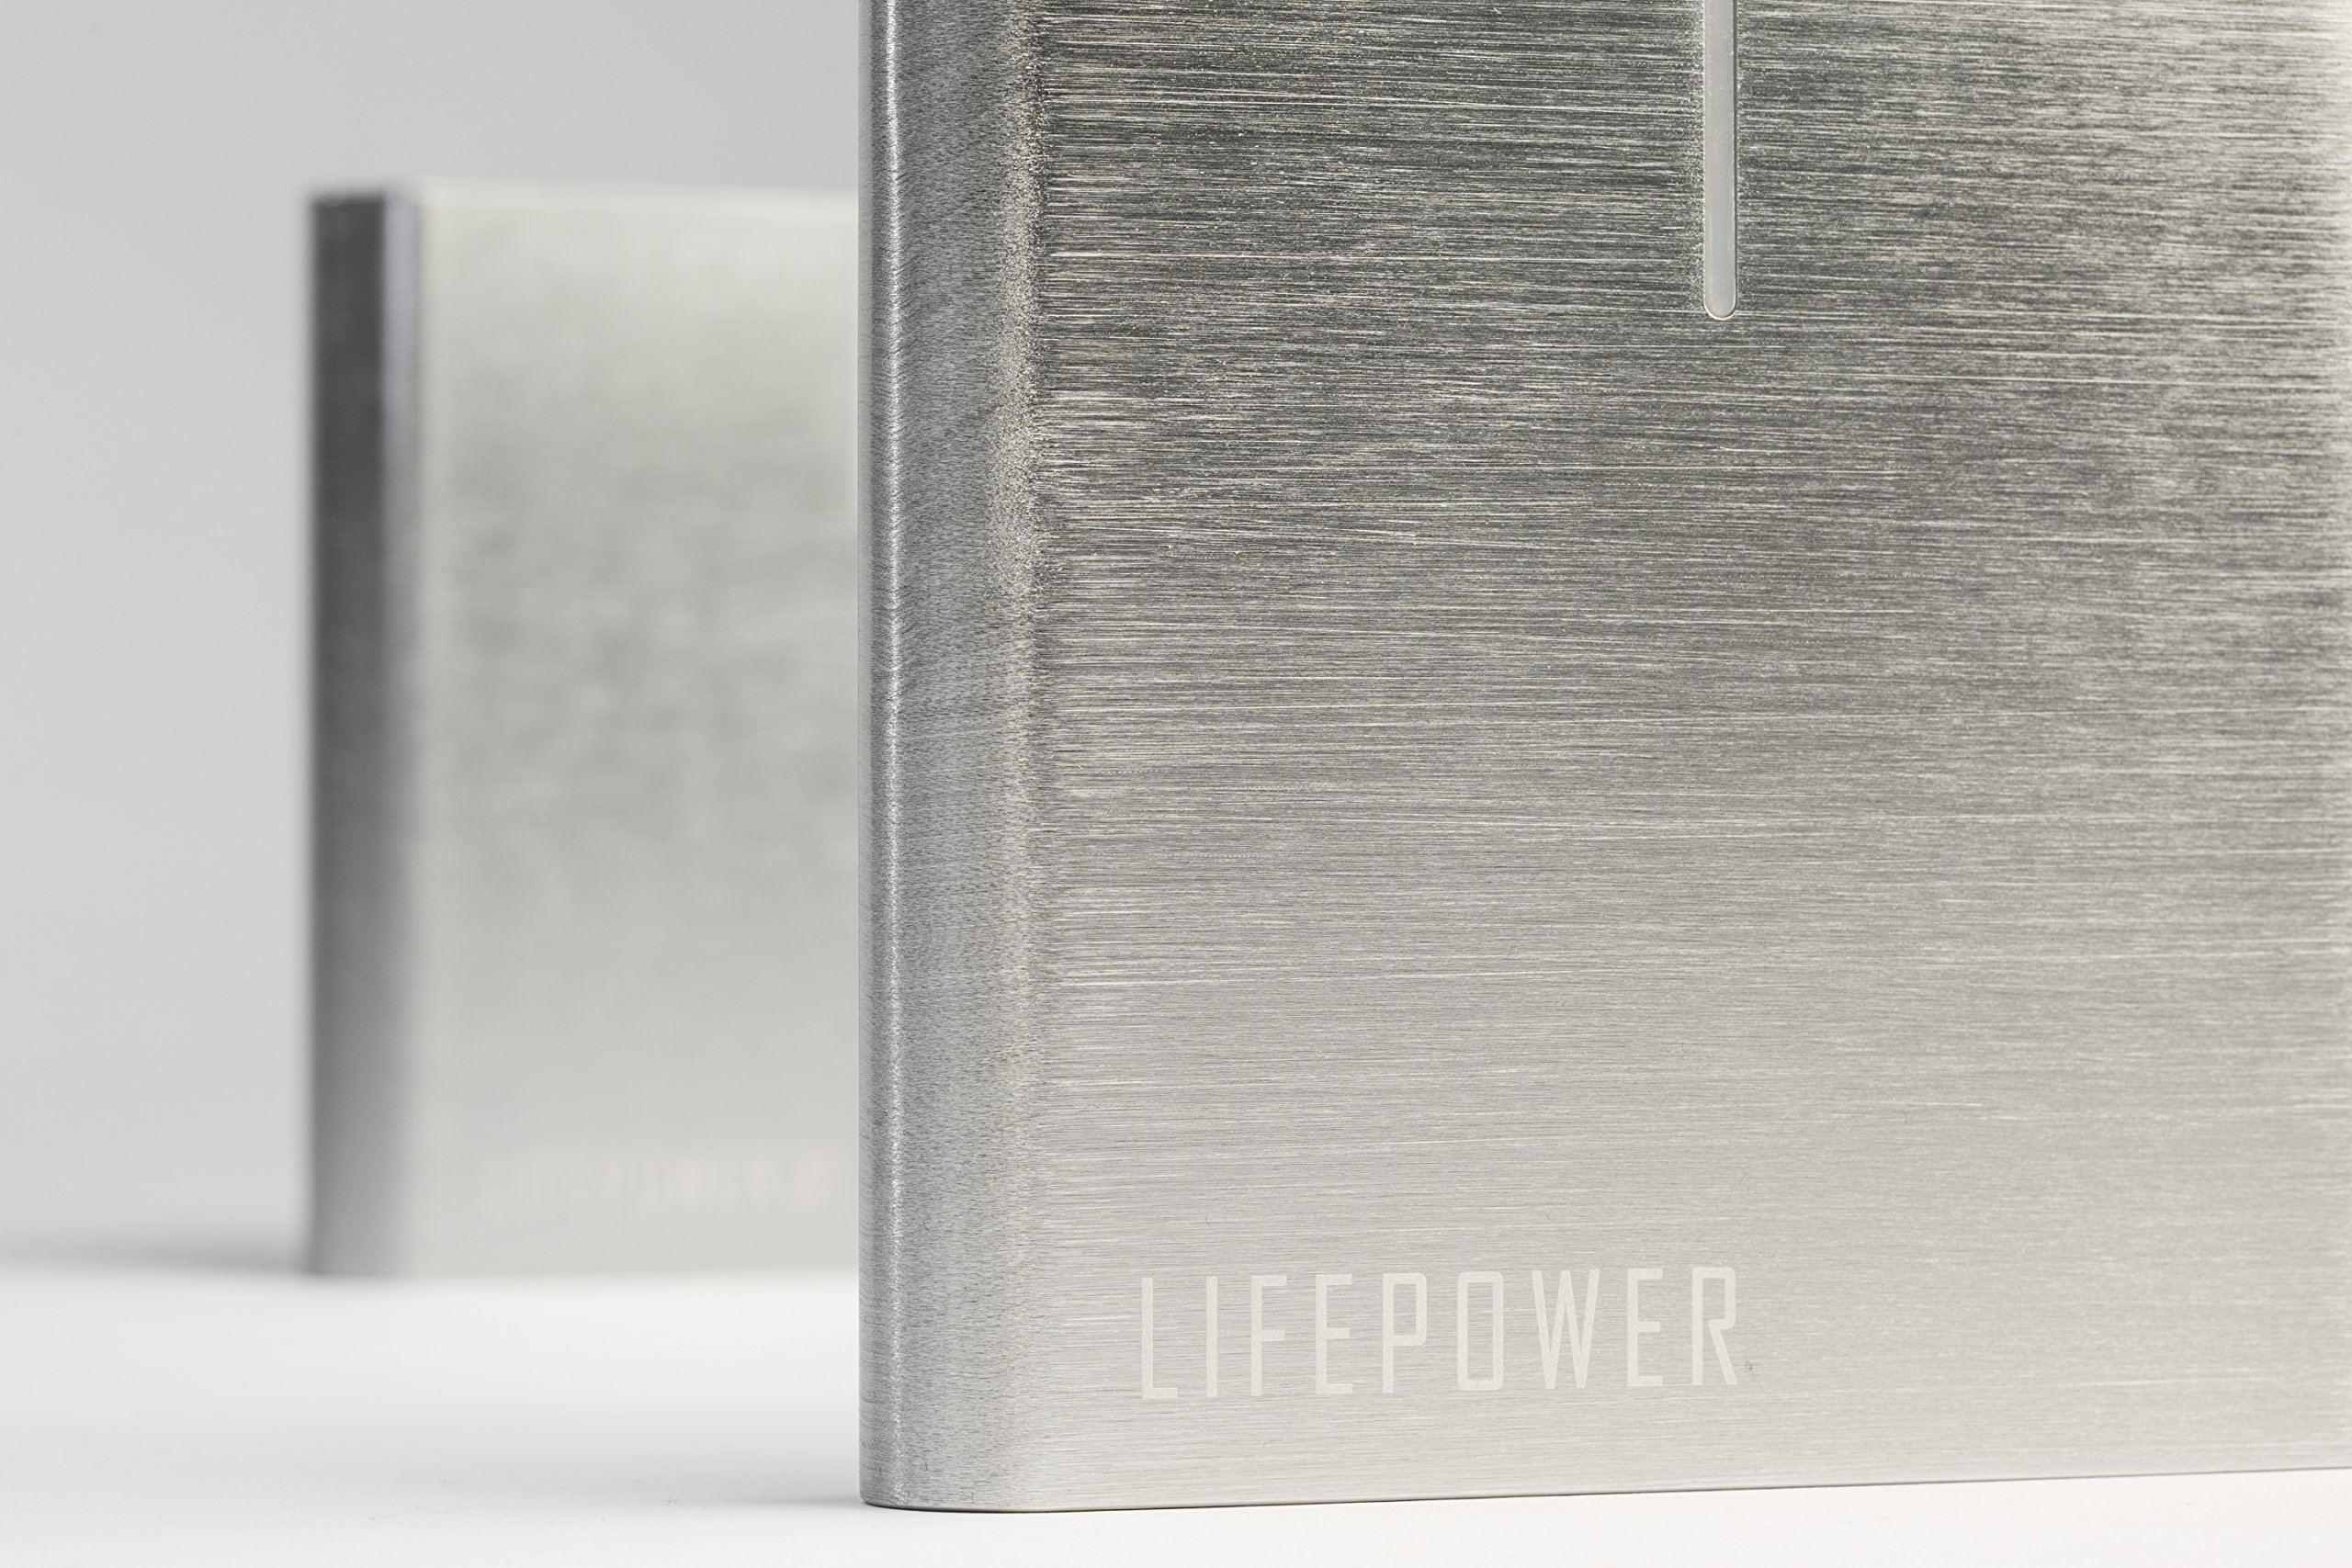 LIFEPOWR A2 S - Portable Battery w/ 120V AC Outlet. Power Up MacBook, TV, Laptop, Camera, Camping, Lights, CPAP,... Universal Powerbank with plug, up to 120W max by LifePower (Image #1)